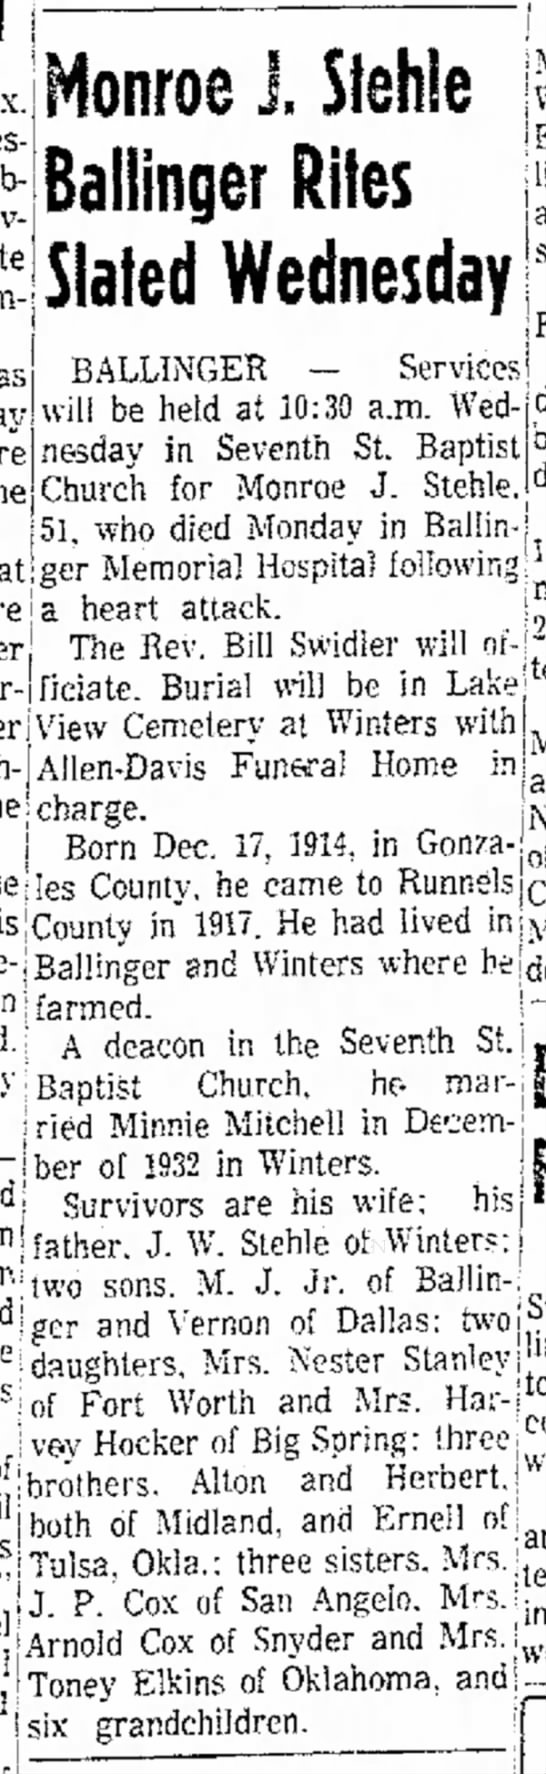 Monroe J Stehle death, Abilene Reporter-News (Abilene, Texas) 28 Jun 1966, pg 9 - Siehie Baliinger Rites Slated Wednesday object...